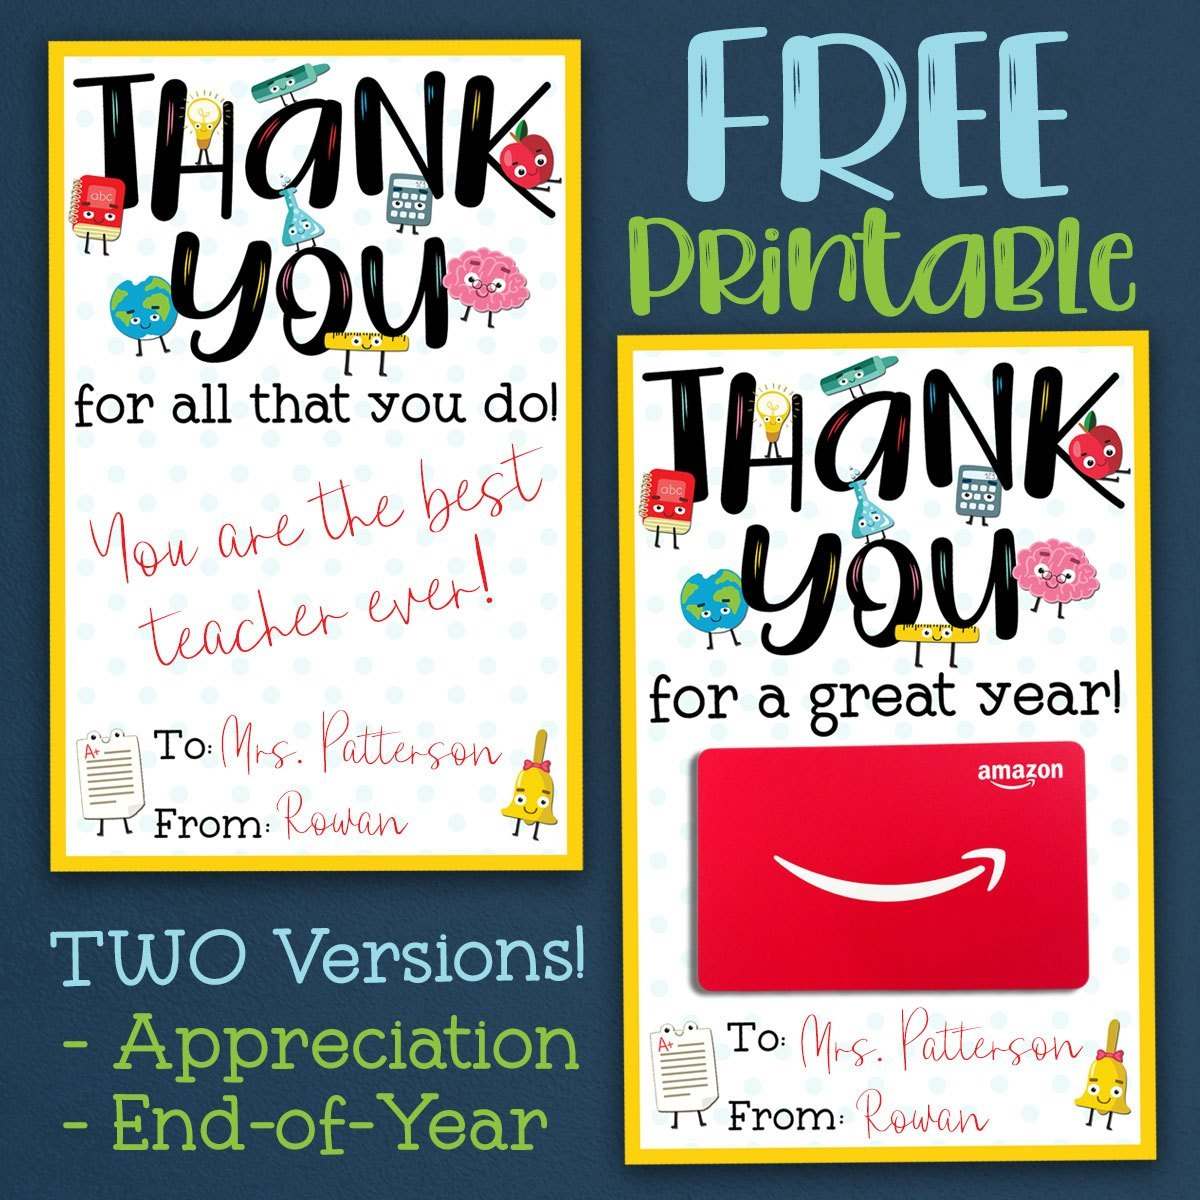 Printable thank you teacher christmas cards clipart svg black and white download FREE Teacher Appreciation Thank You Printable - Two Versions! svg black and white download